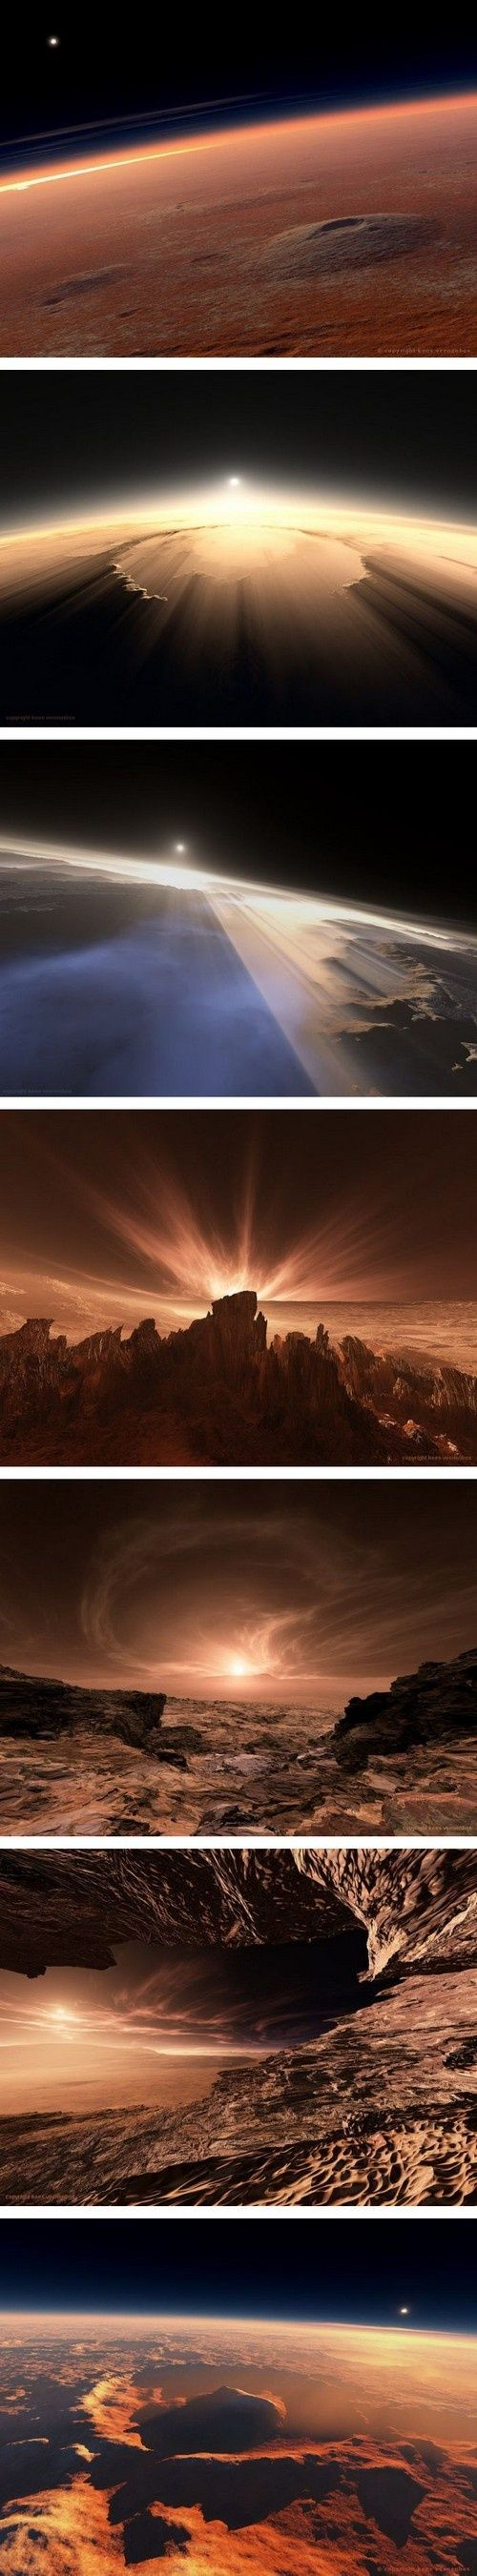 Ethereal landscapes nature photography by donna geissler - Photos Of Mars The Red Planet